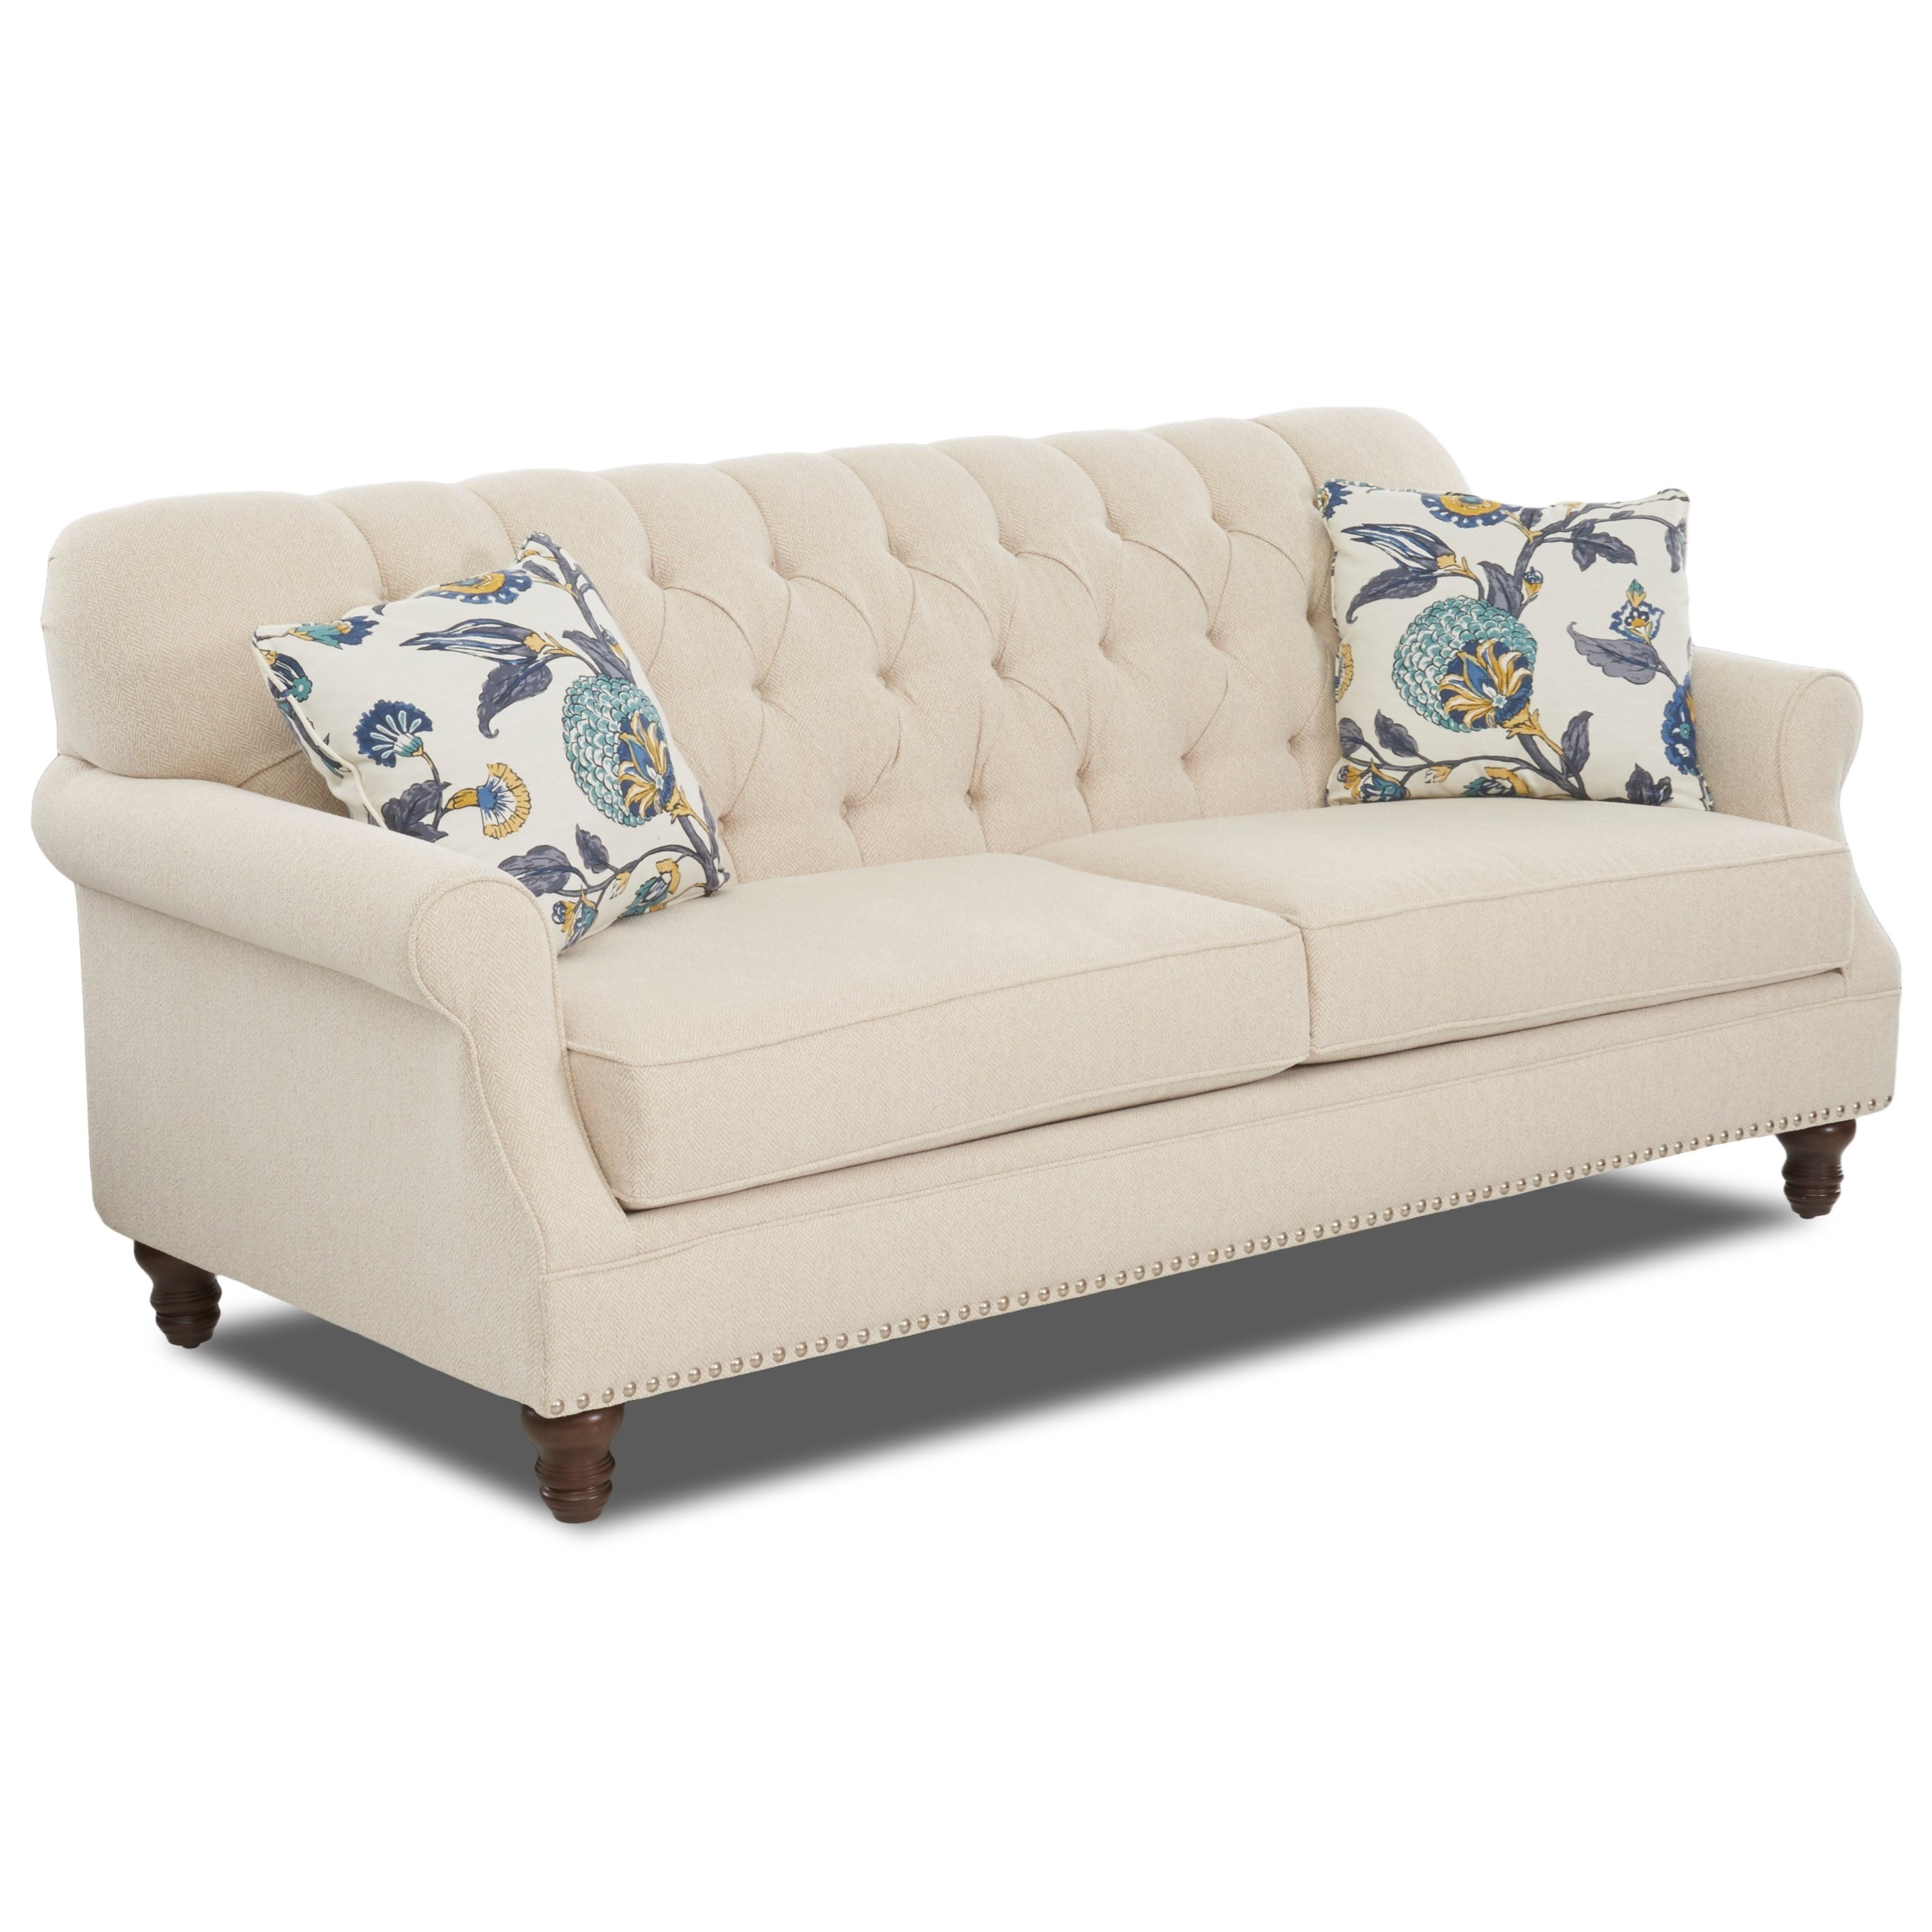 Traditional tufted apartment size sofa with nailheads by klaussner wolf furniture - Apartment size sectional sofa ...